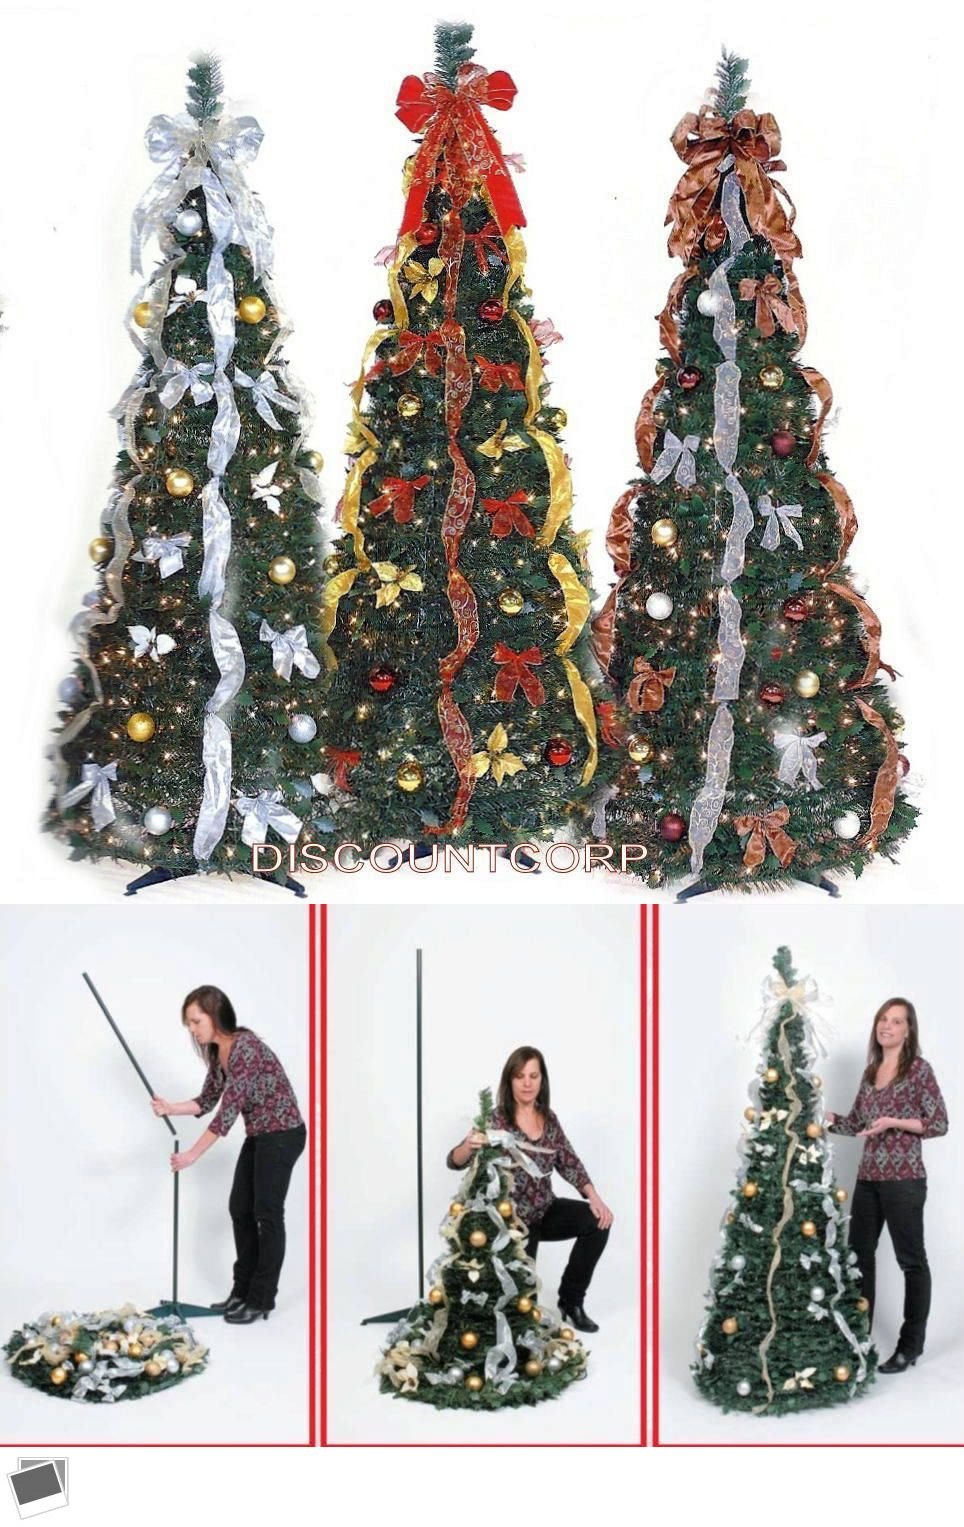 Artificial Christmas Trees 117414 6 Ft Pop Up Decorated And Pre Lit Collapsible Christmas Christmas Tree Collapsible Christmas Tree Artificial Christmas Tree